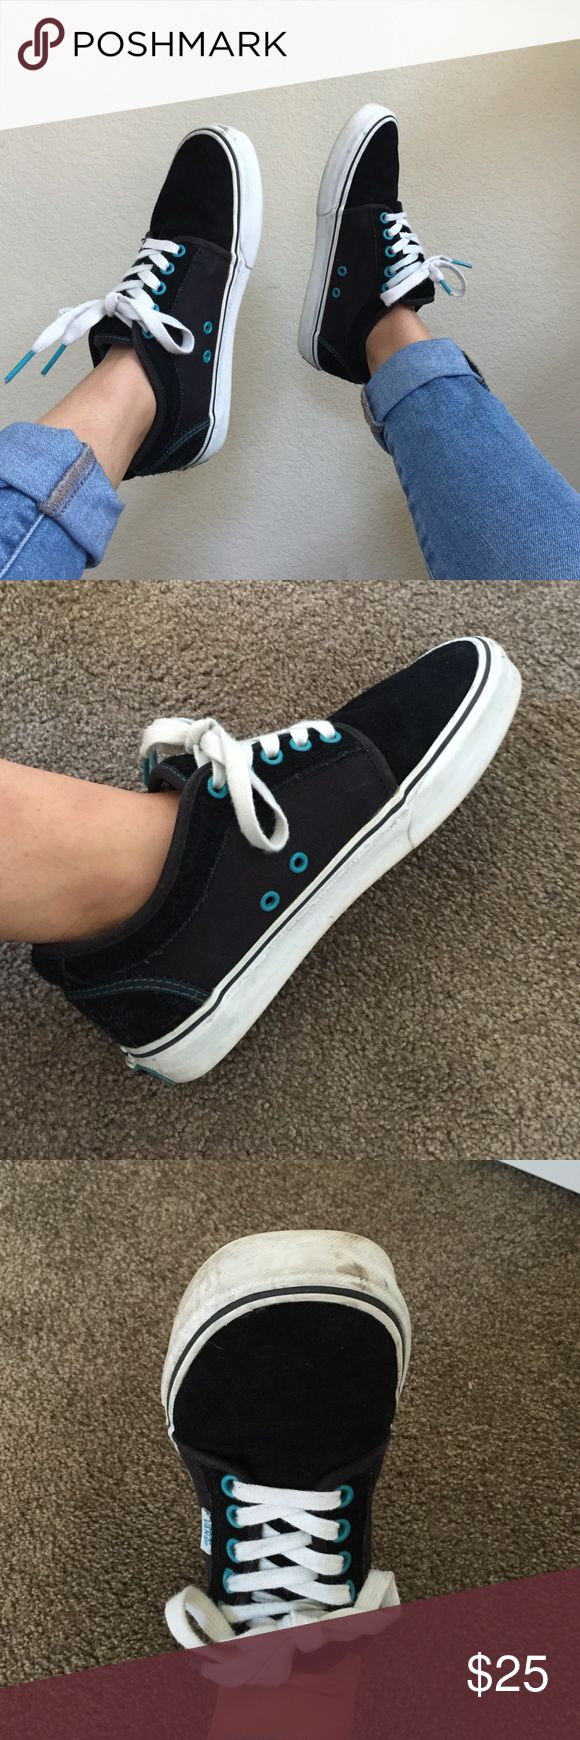 Vans Chukka Low Vans chukka low! In great condition with minor scuffs (as shown). Really comfy but no longer my style. Has accents of teal. Sole is in great condition since they haven't been worn in Vans Shoes Sneakers